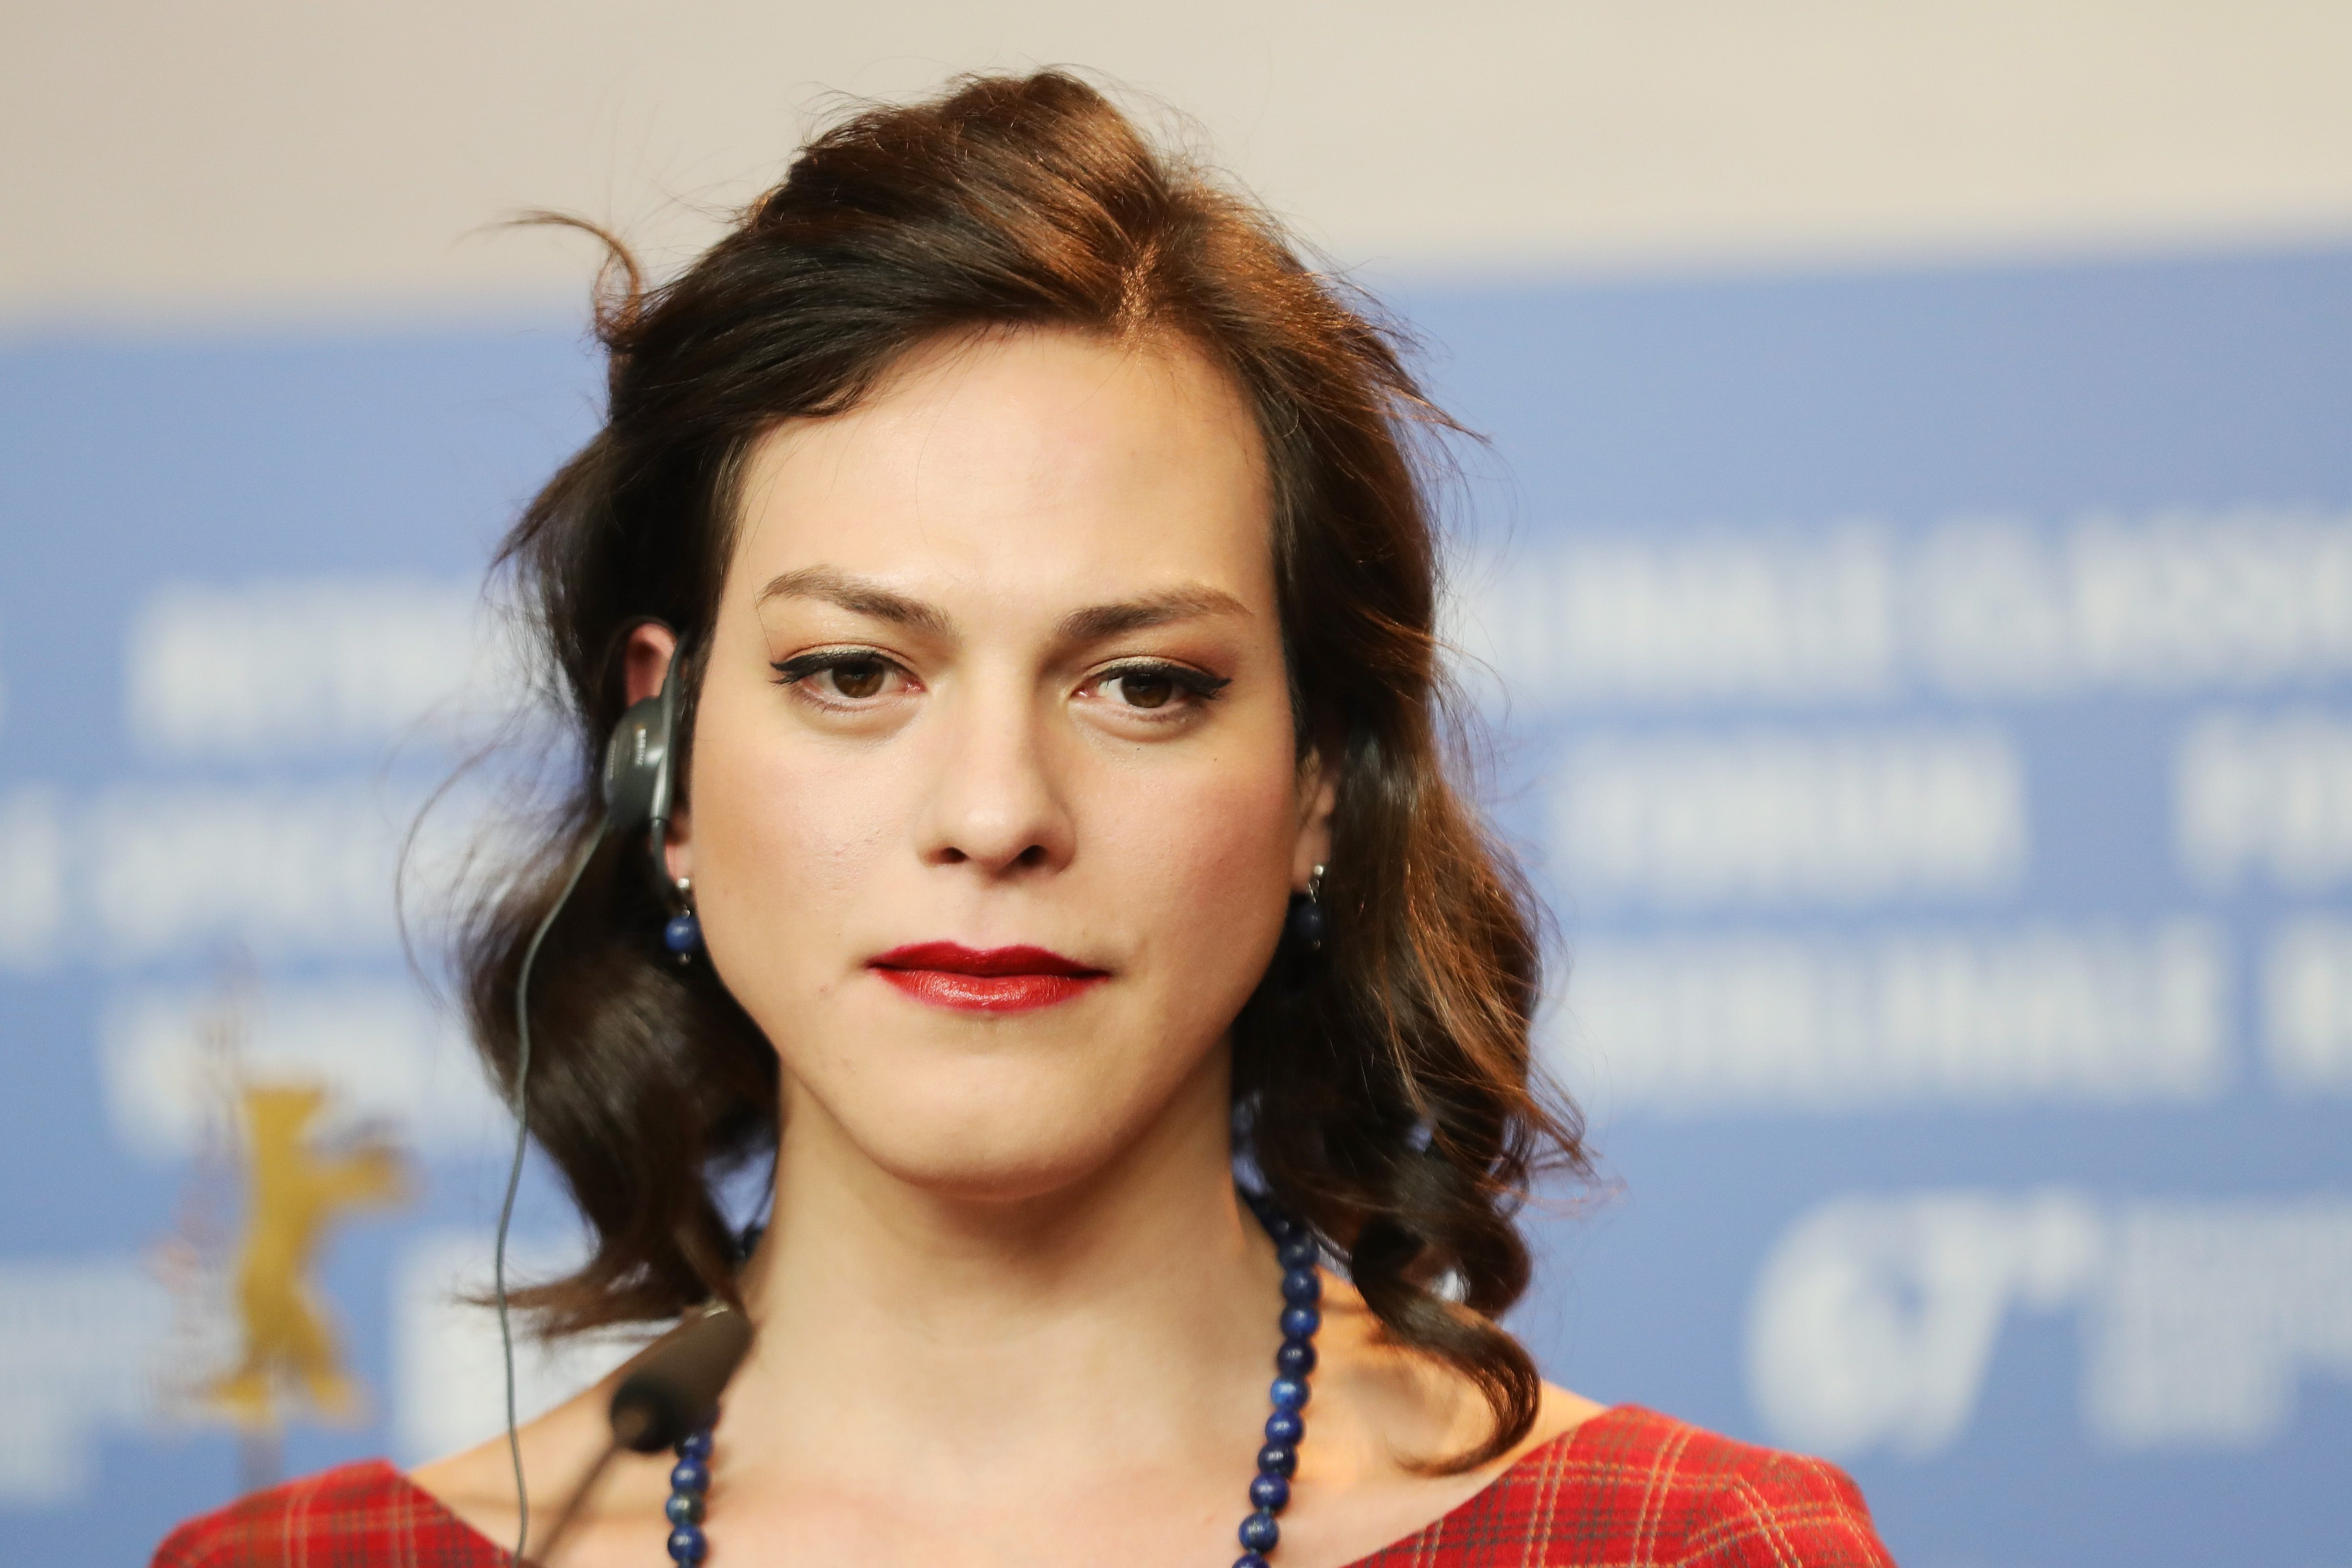 Trans Actress Daniela Vega Cast as Detective Solving Gender-Based Crimes in Chilean Series